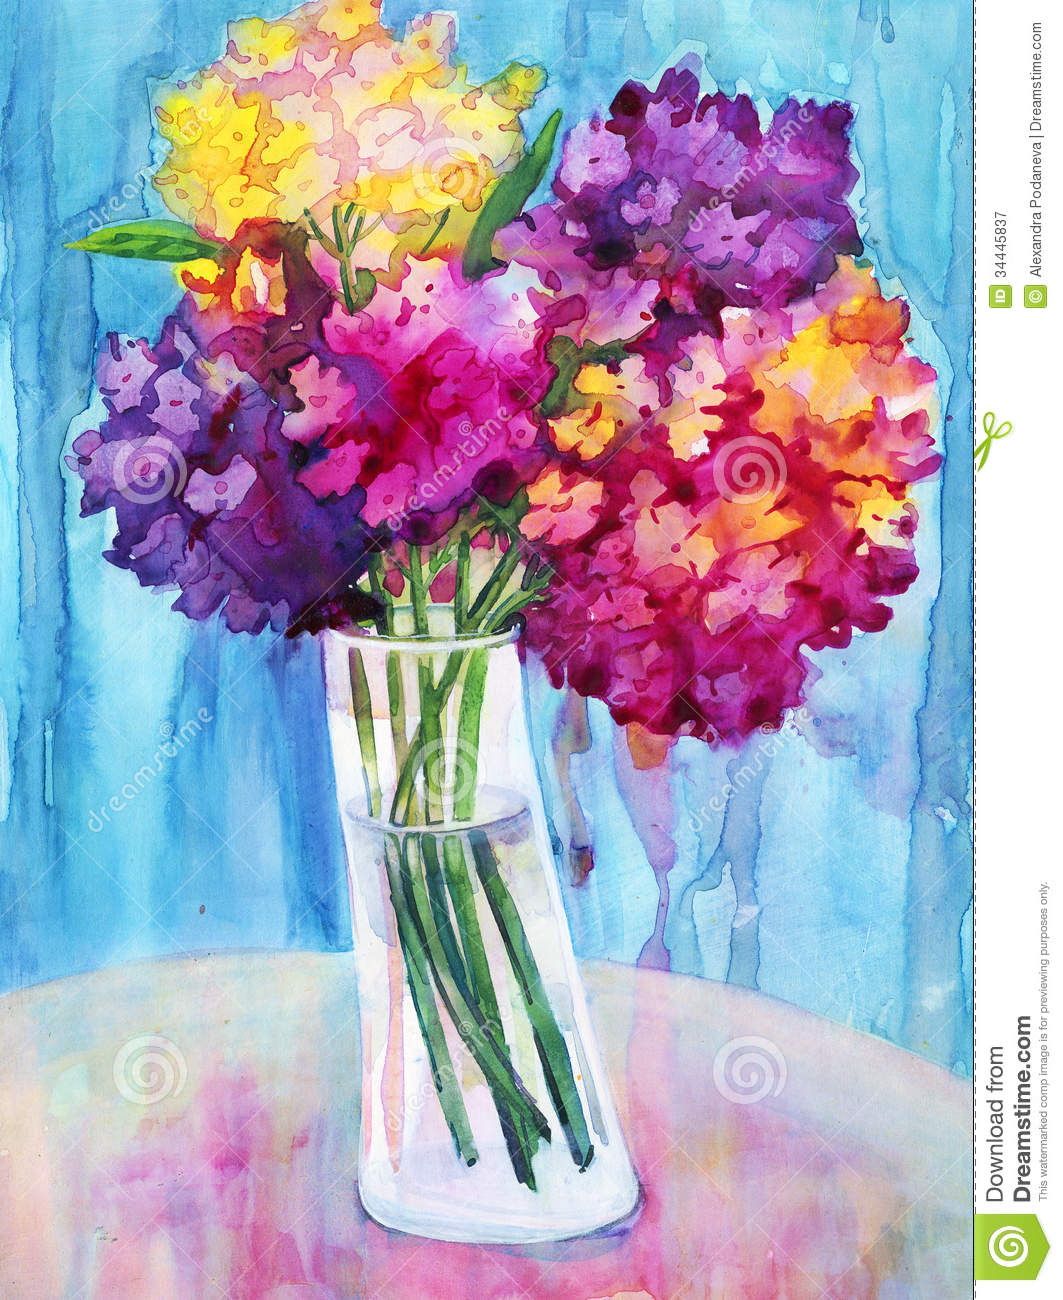 Watercolor phlox flowers stock illustration illustration of brush watercolor phlox flowers izmirmasajfo